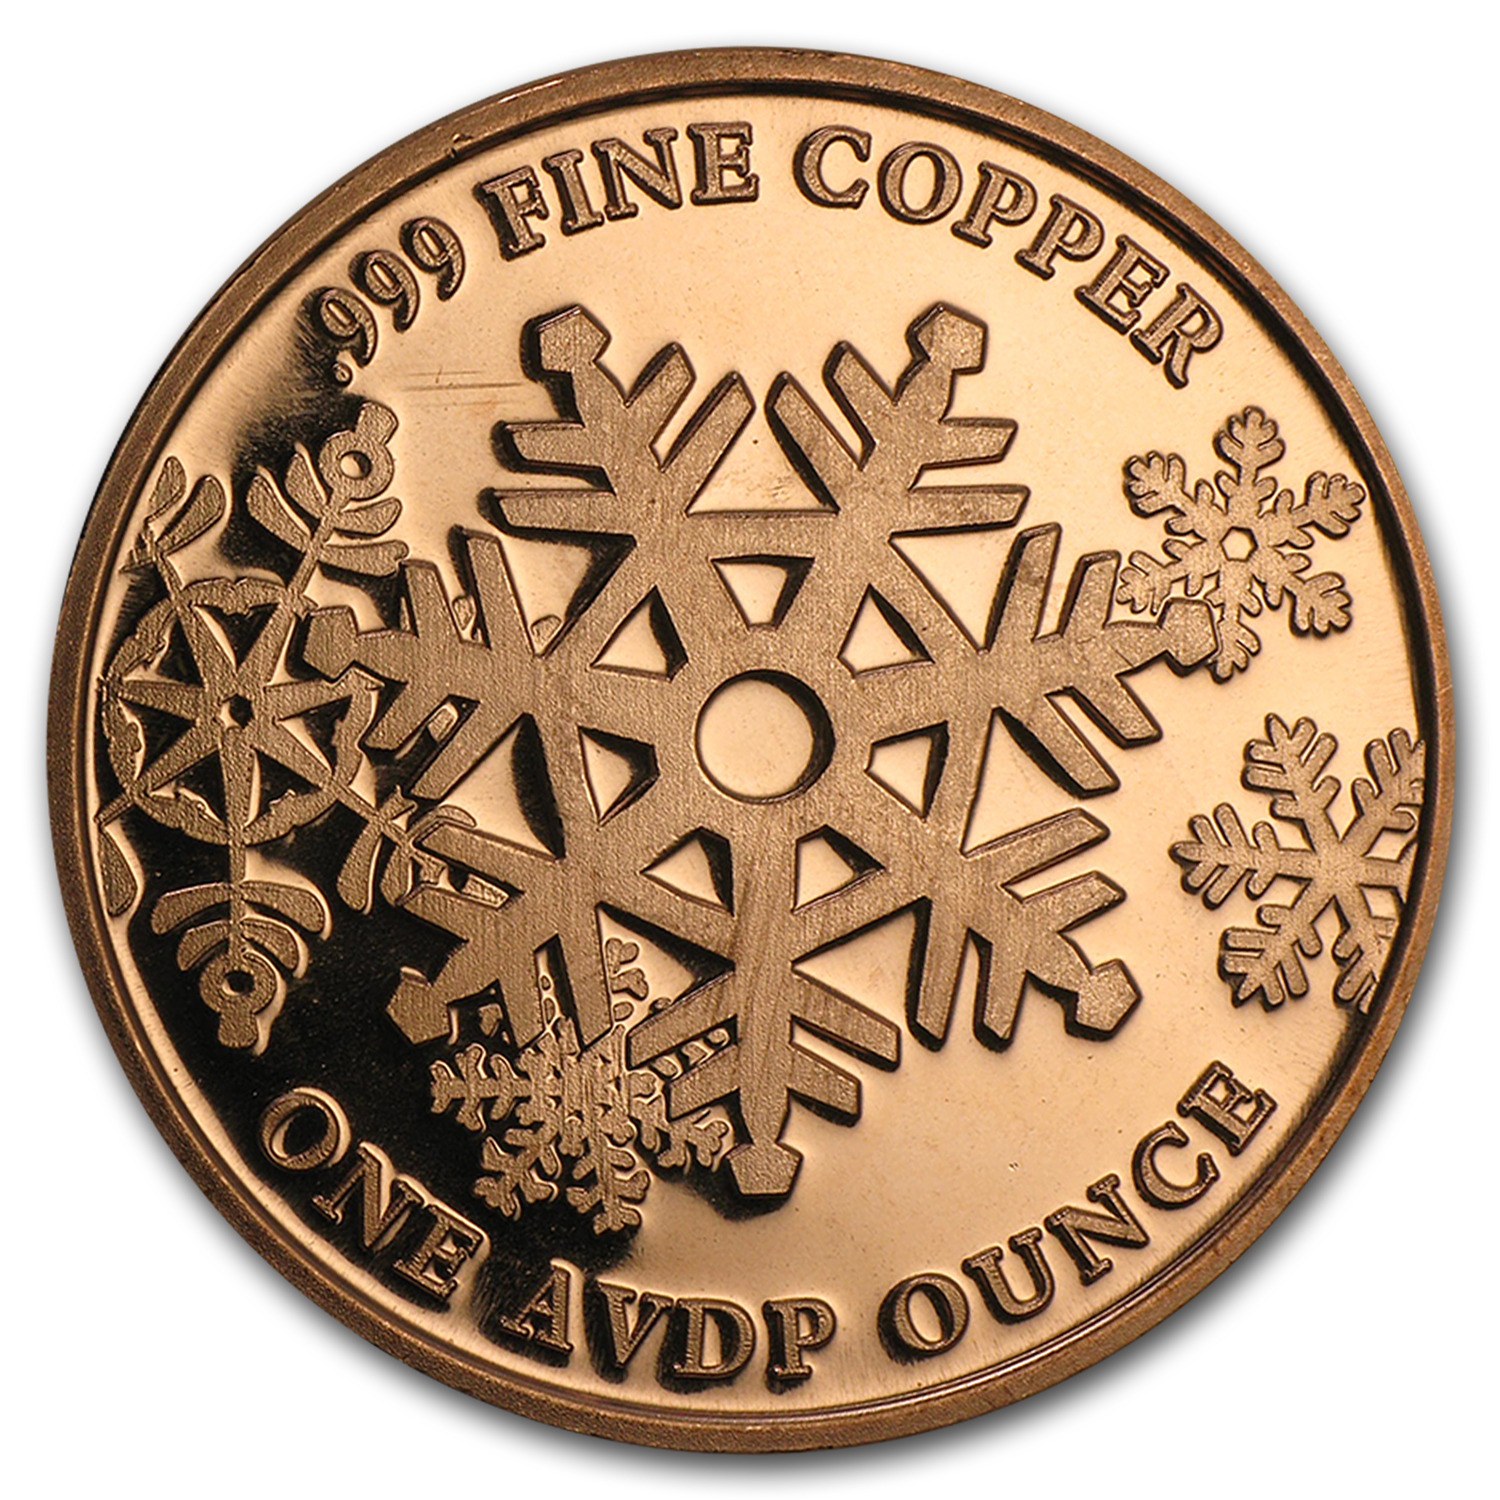 1 oz Copper Round - Merry Christmas To All